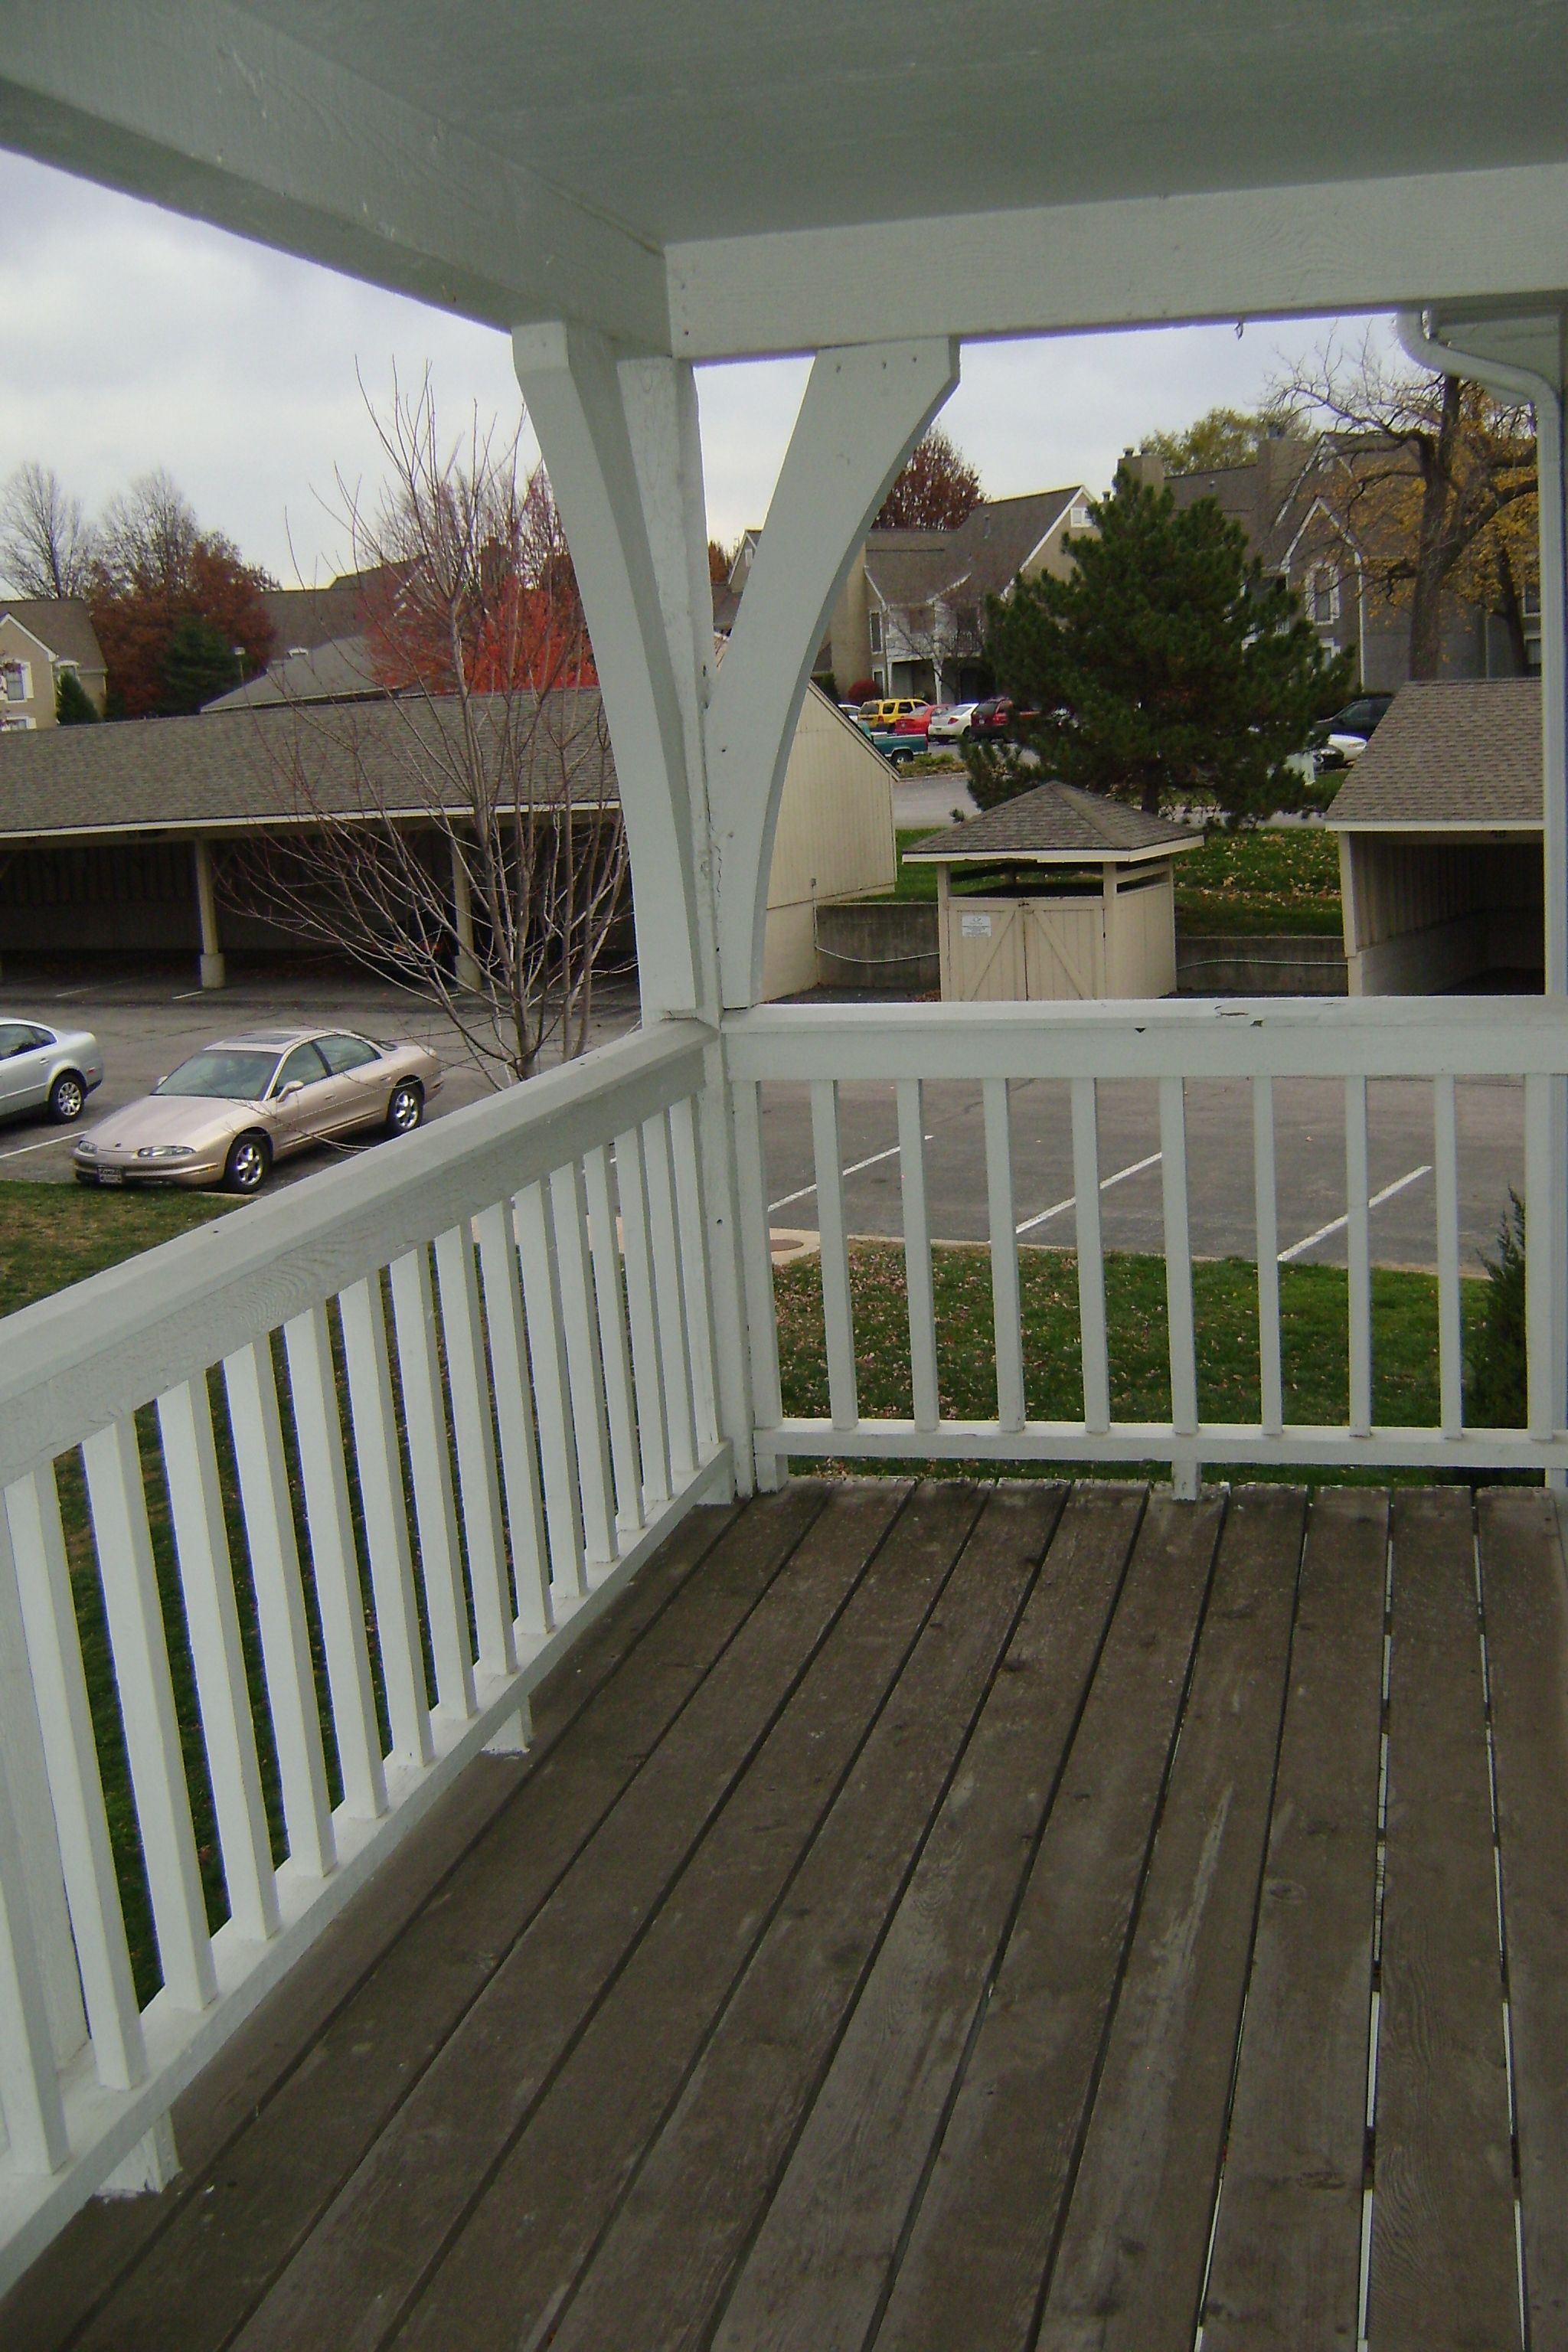 Balcony Built in microwave, One bedroom apartment, Have